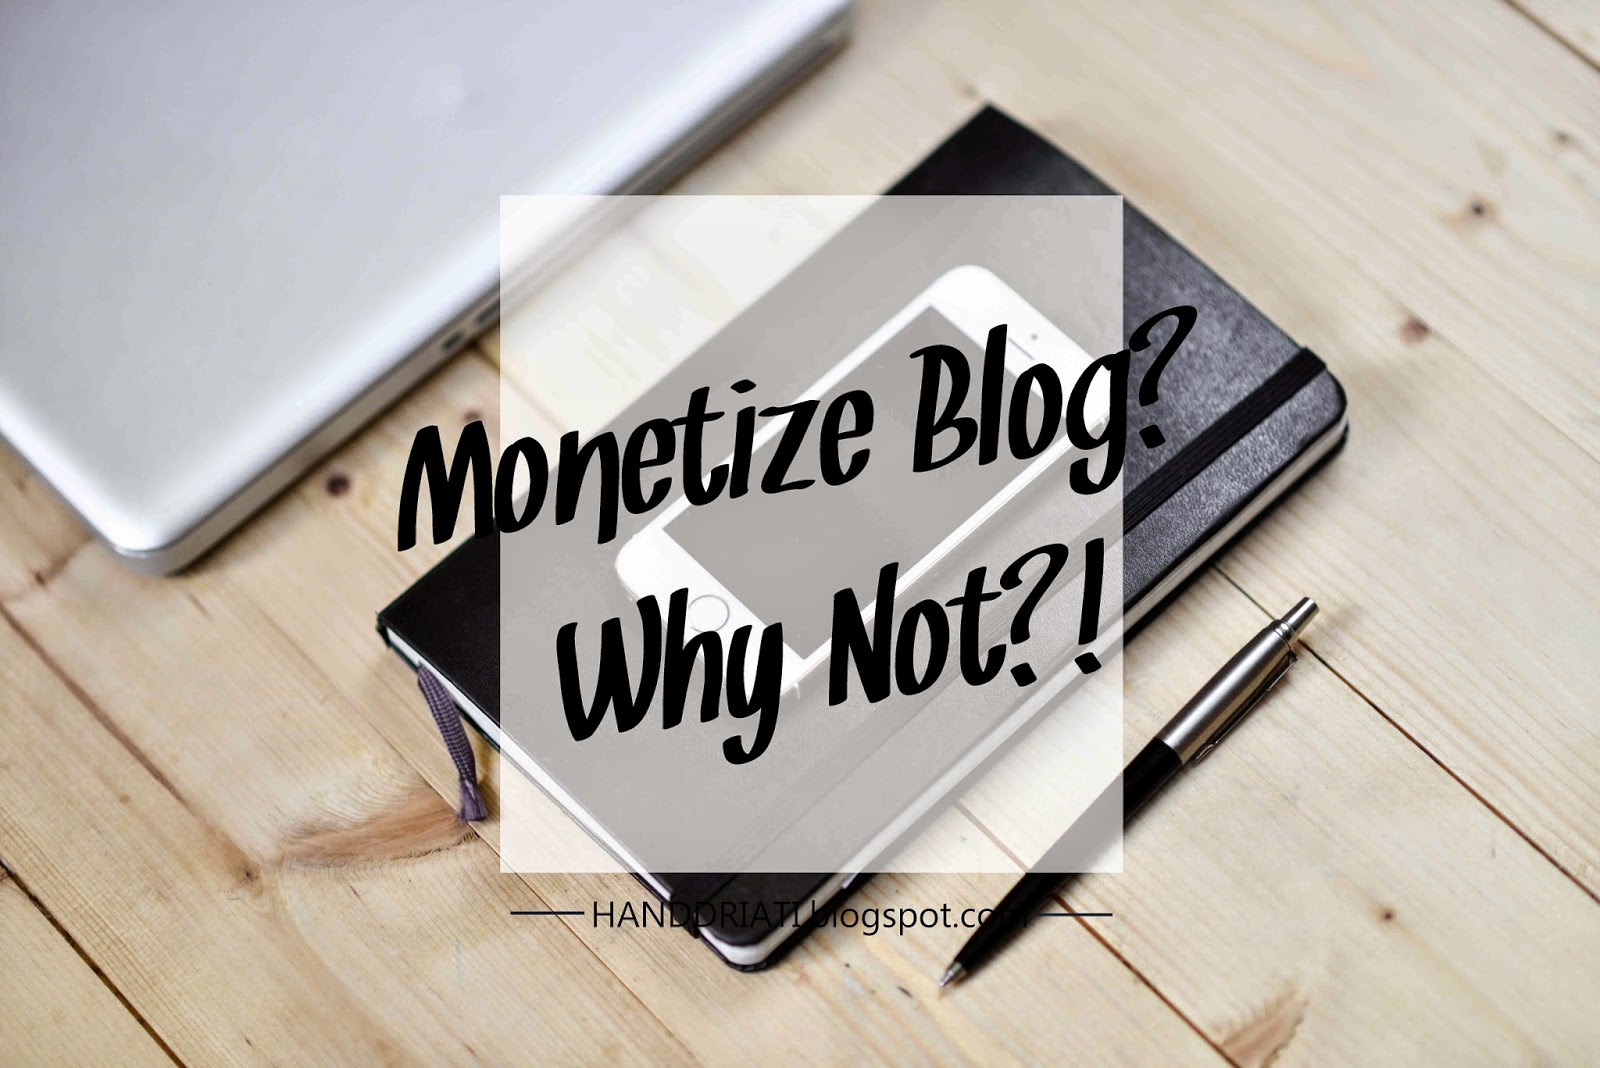 Monetize Blog? Why Not?